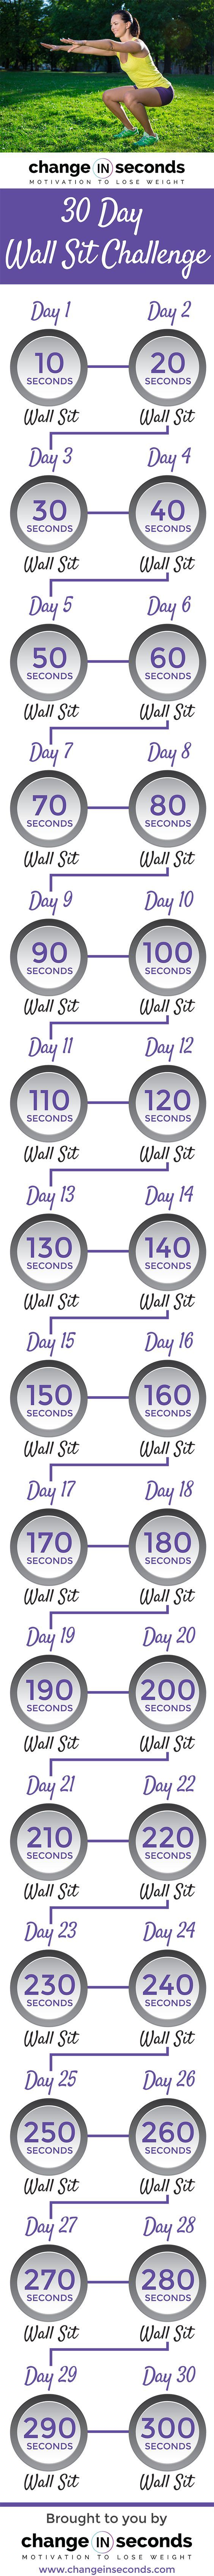 Wall Sit Challenge (Download PDF) http://www.changeinseconds.com/30-day-wall-sit-challenge/: